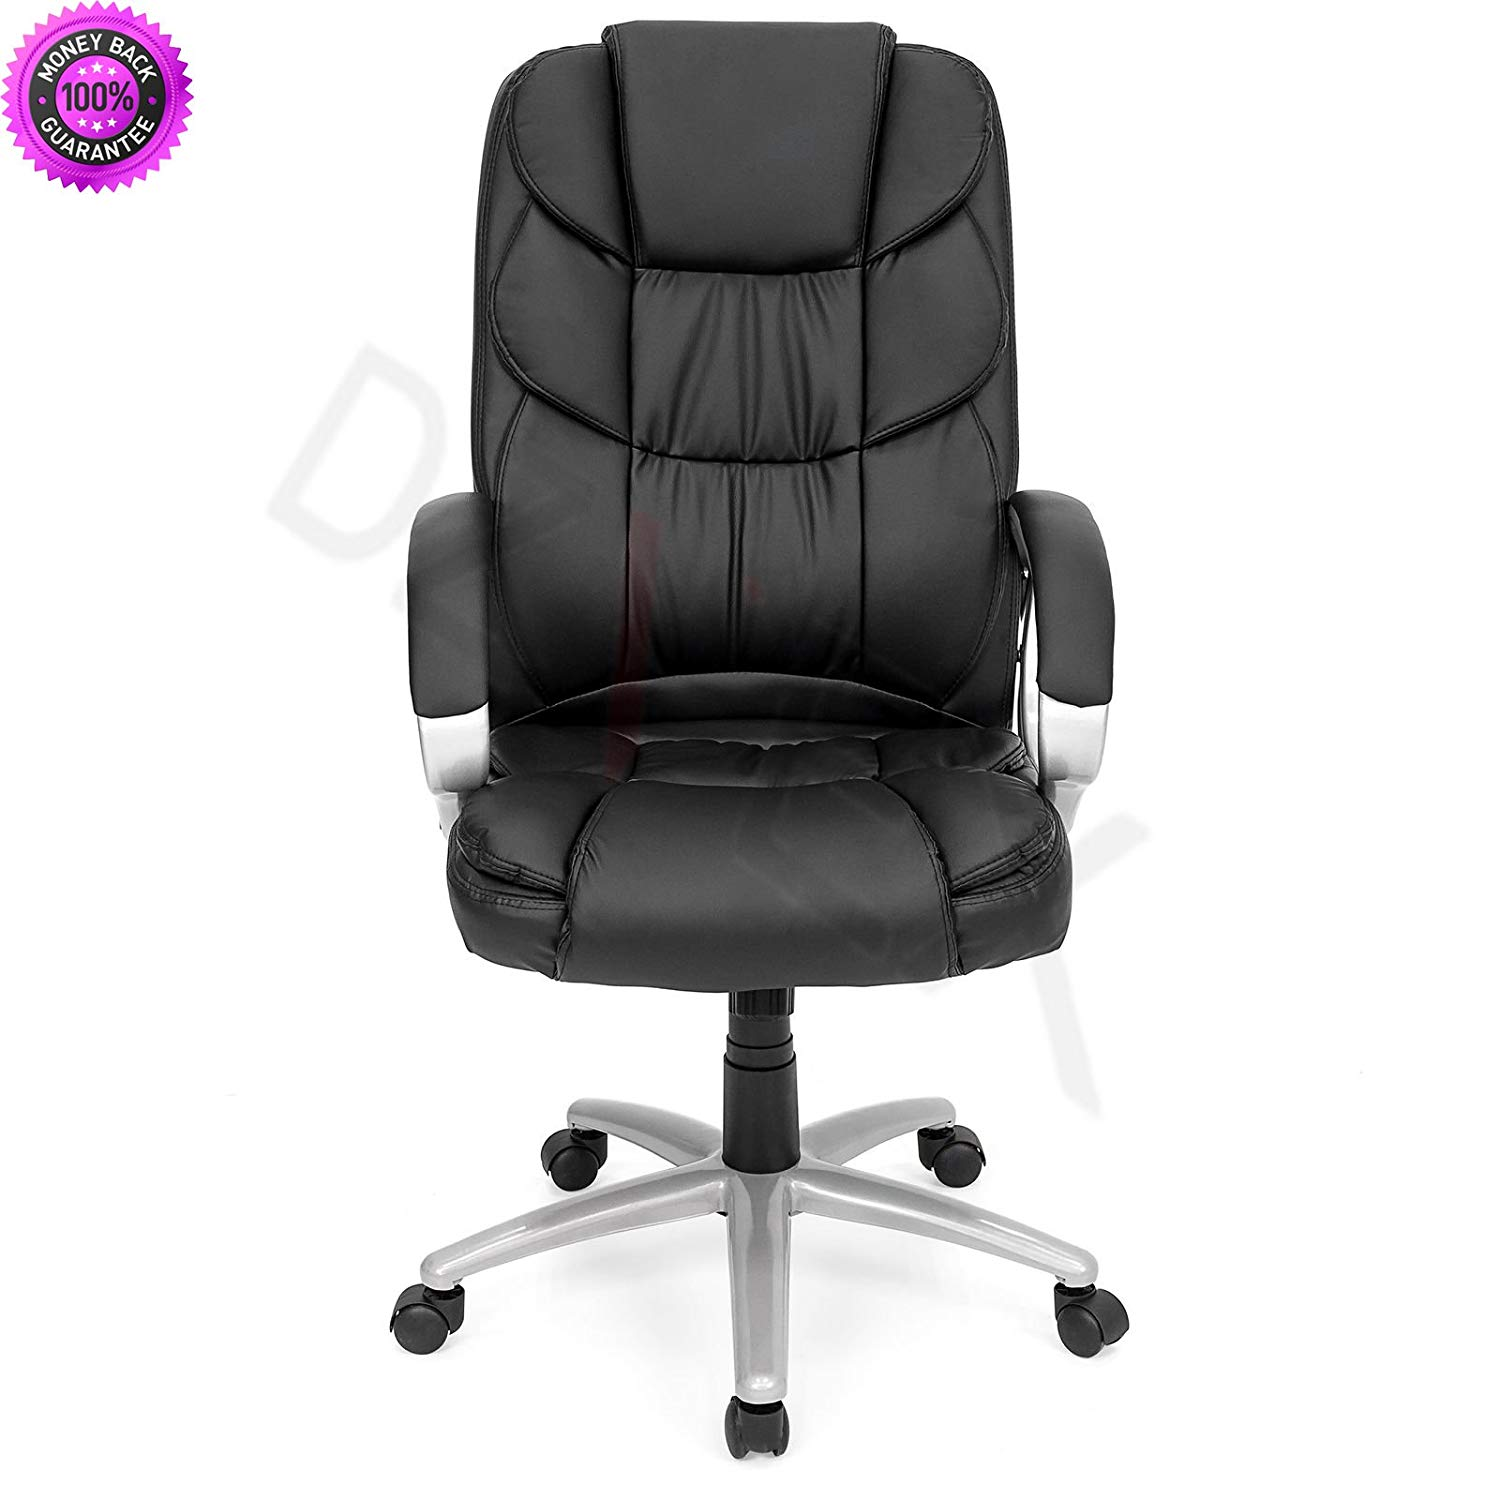 DzVeX_Ergonomic PU Leather High Back Office Chair, Black And Stacking Chairs  Waiting Room Chairs Office